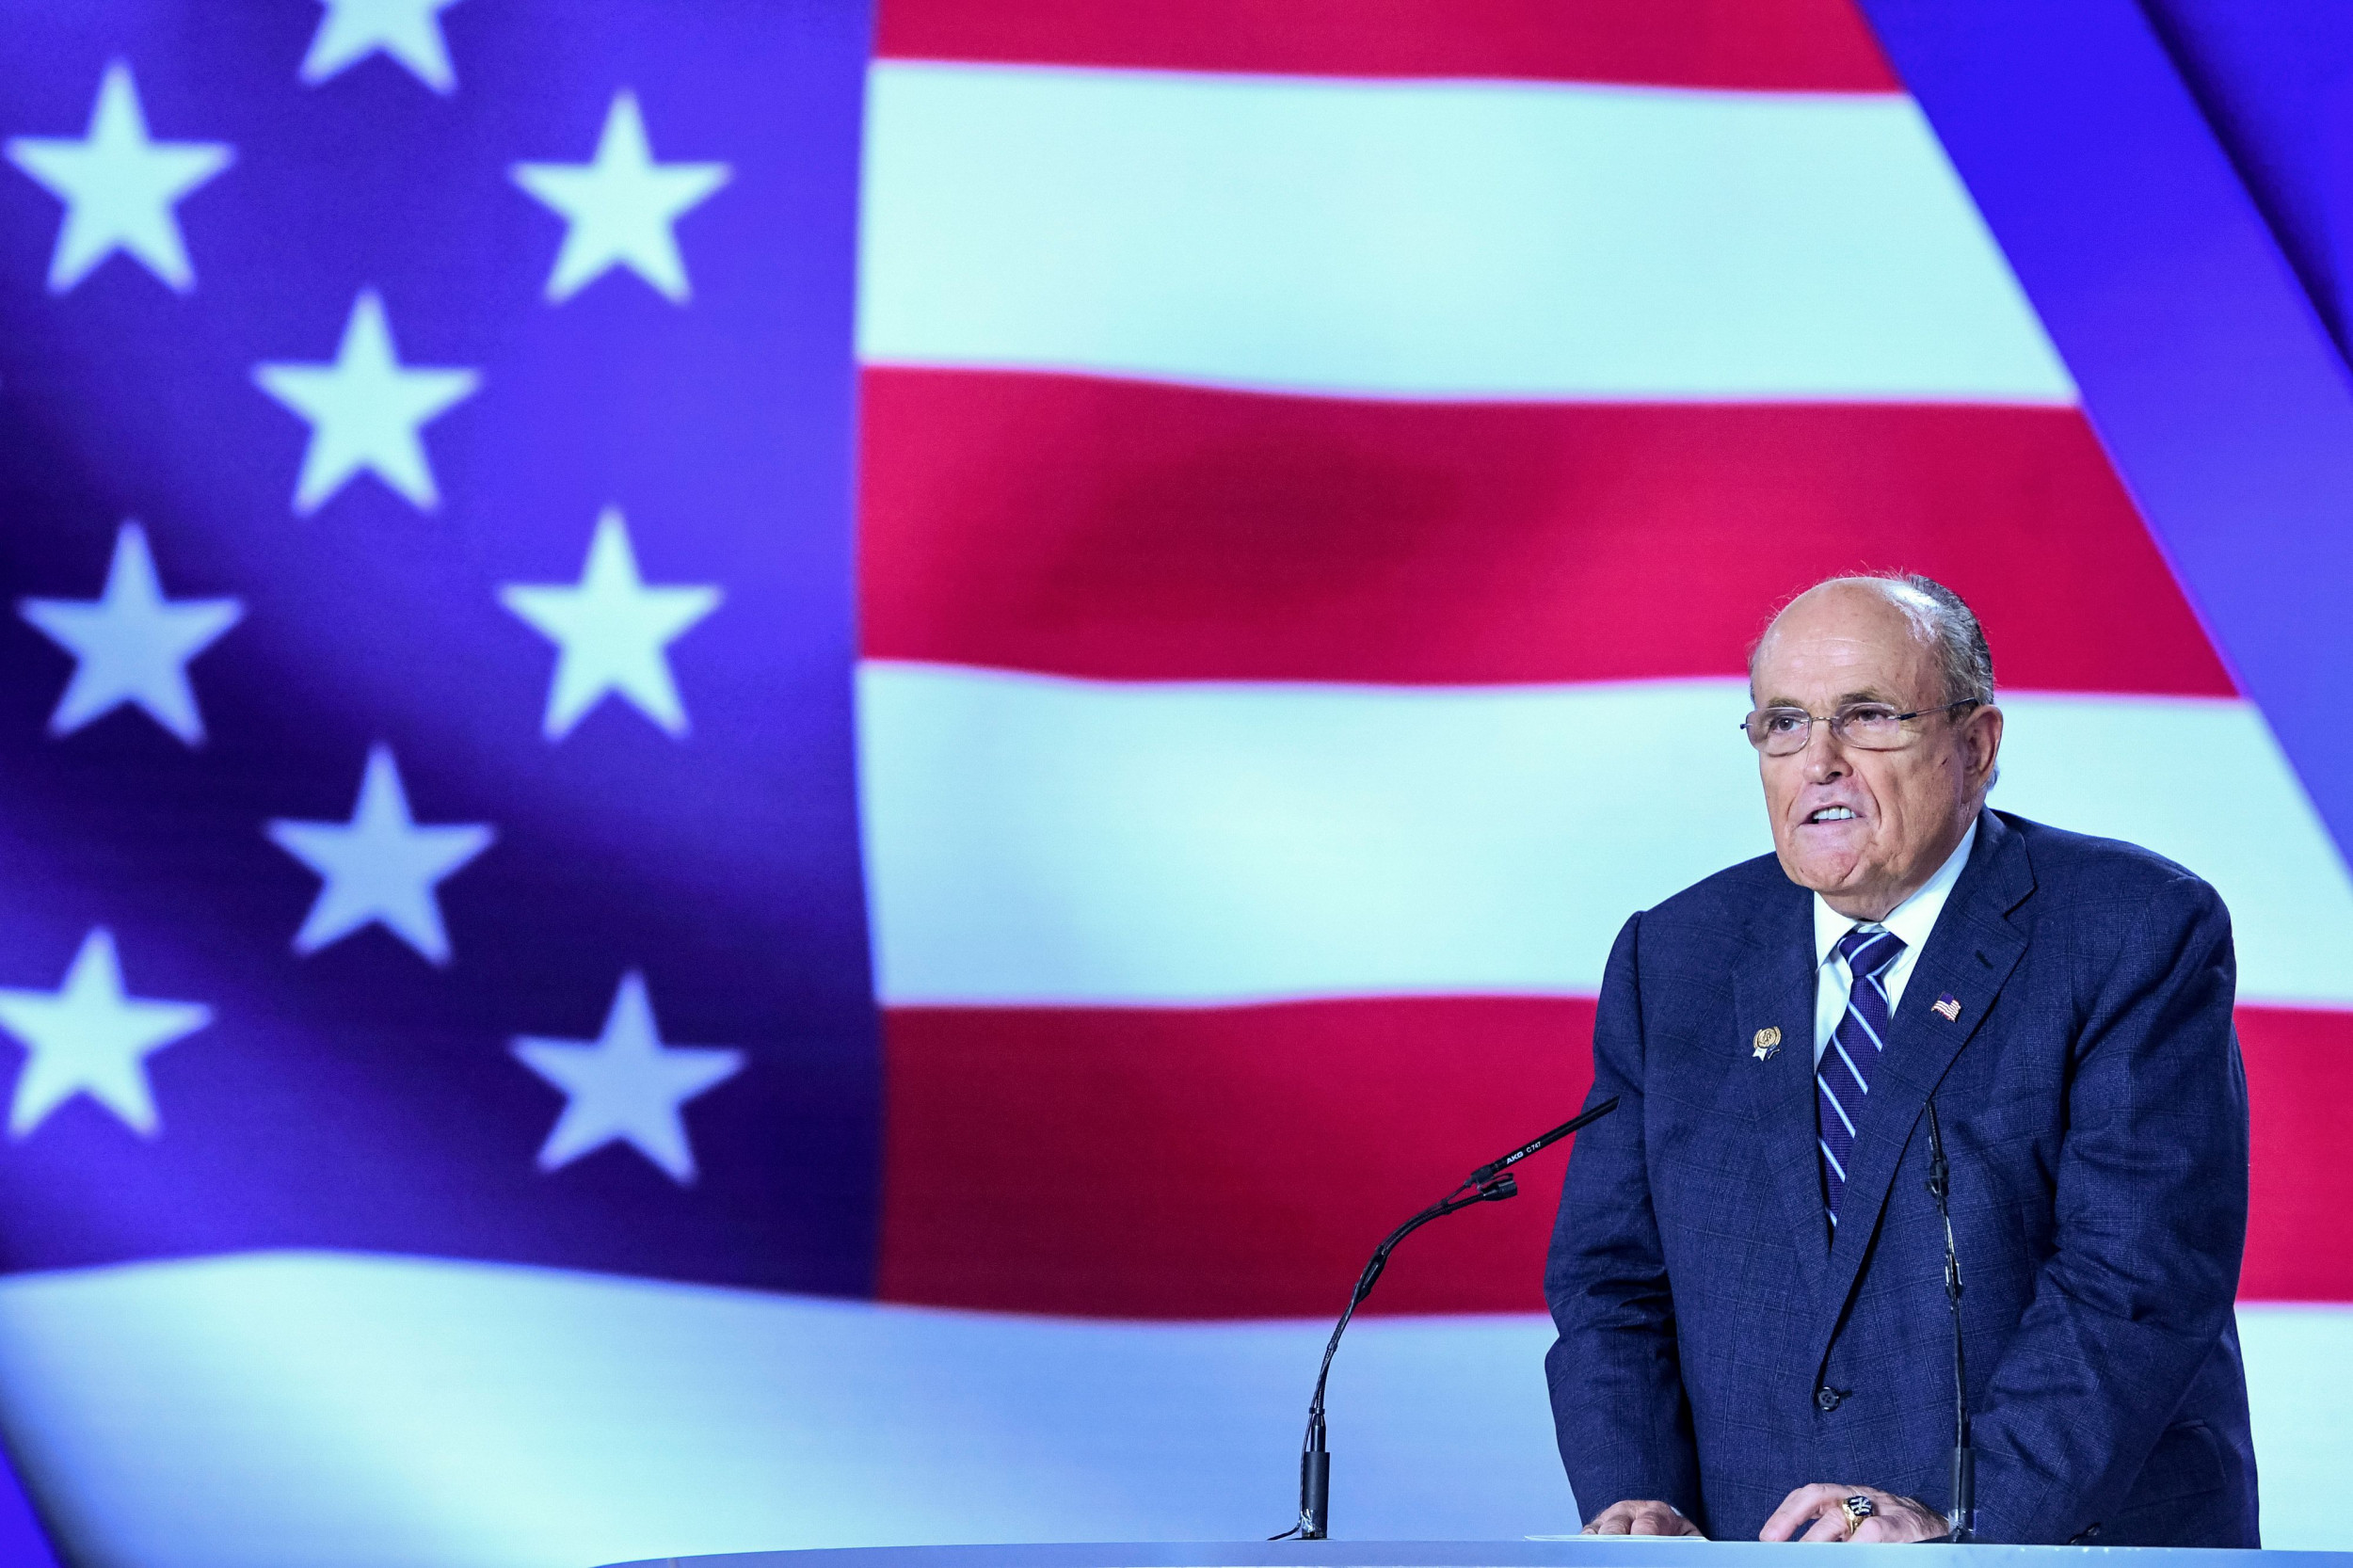 Rudy Giuliani Calls de Blasio a 'Disgrace' After NYPD Attacked With